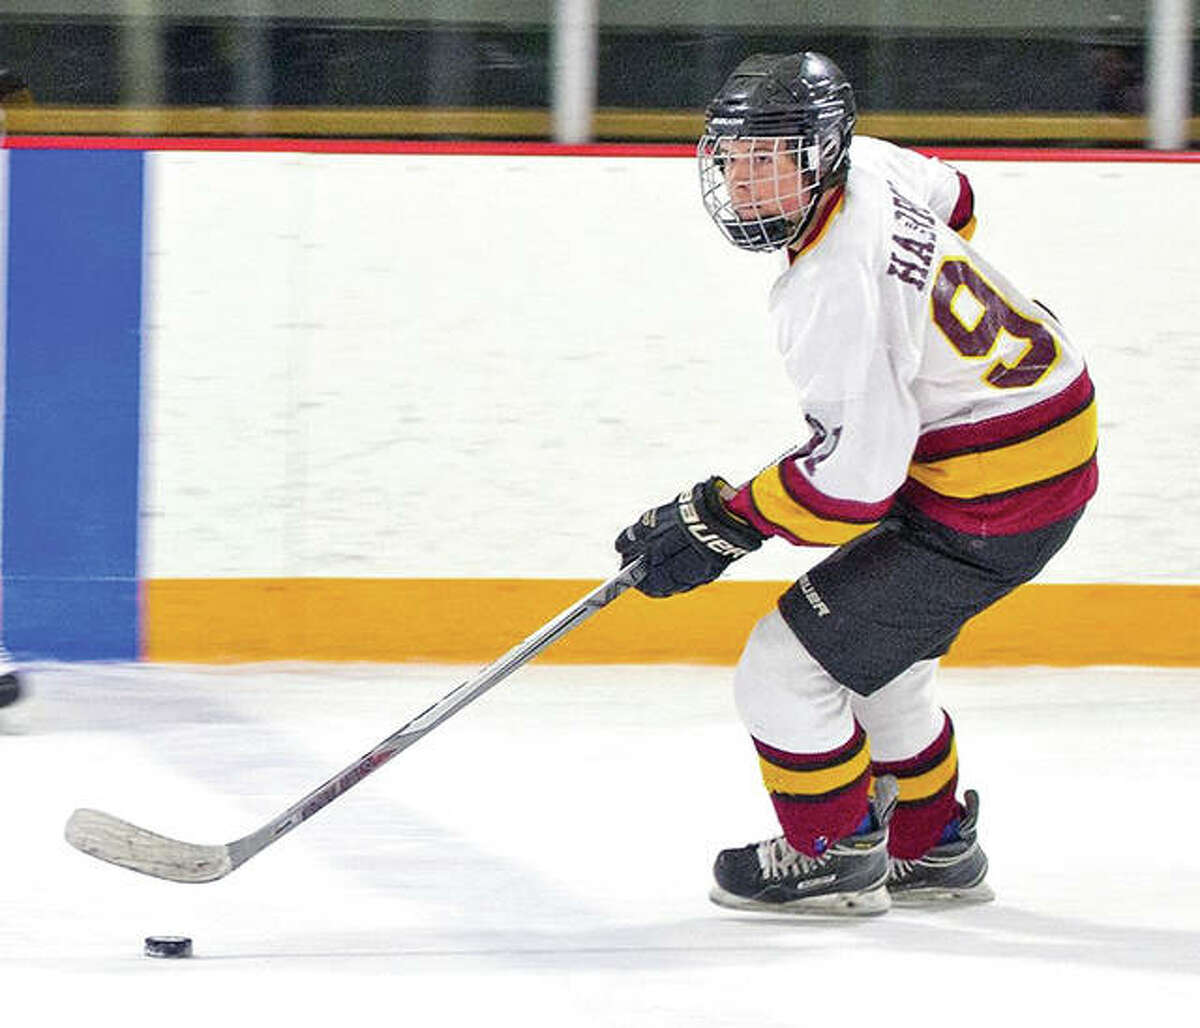 East Alton-Wood River's Kaleb Harrop scored all seven of his team's goals - four of them unassisted, in the Oilers' 7-3 Mississippi Valley Club Hockey Association victory over Alton late Wednesday night at the East Alton Ice Arena.